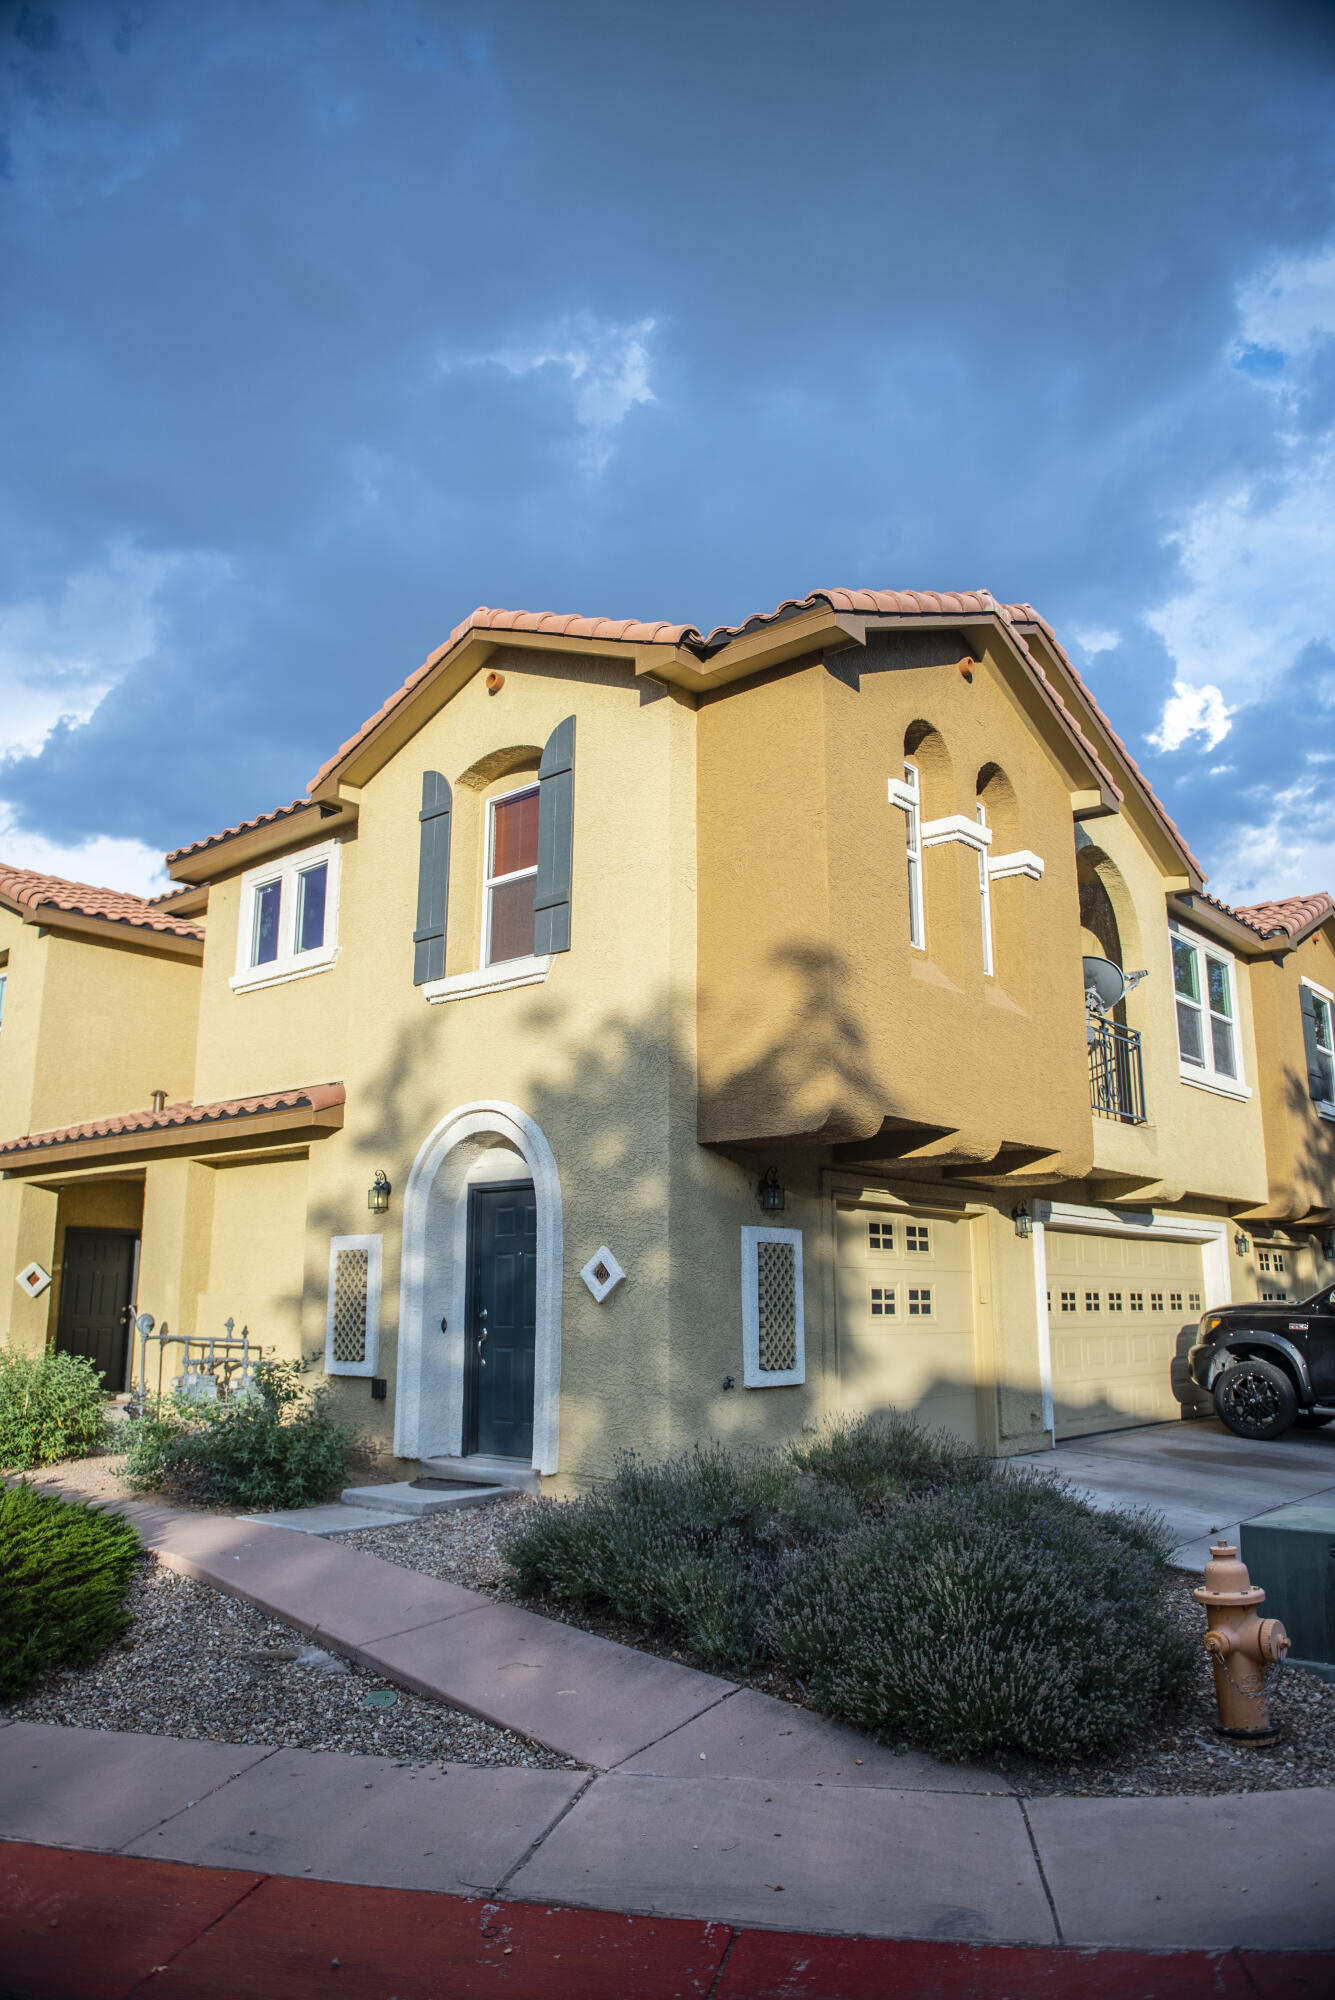 Centrally located condo! Close to UNM and shopping. Great community with a pool for those Hot Albuquerque days. All appliances stay! HOA features - Community Pool - Maintenance of Exterior of Residence - Maintenance of Front Landscape - Clubhouse - Common Area - and Gated Security.